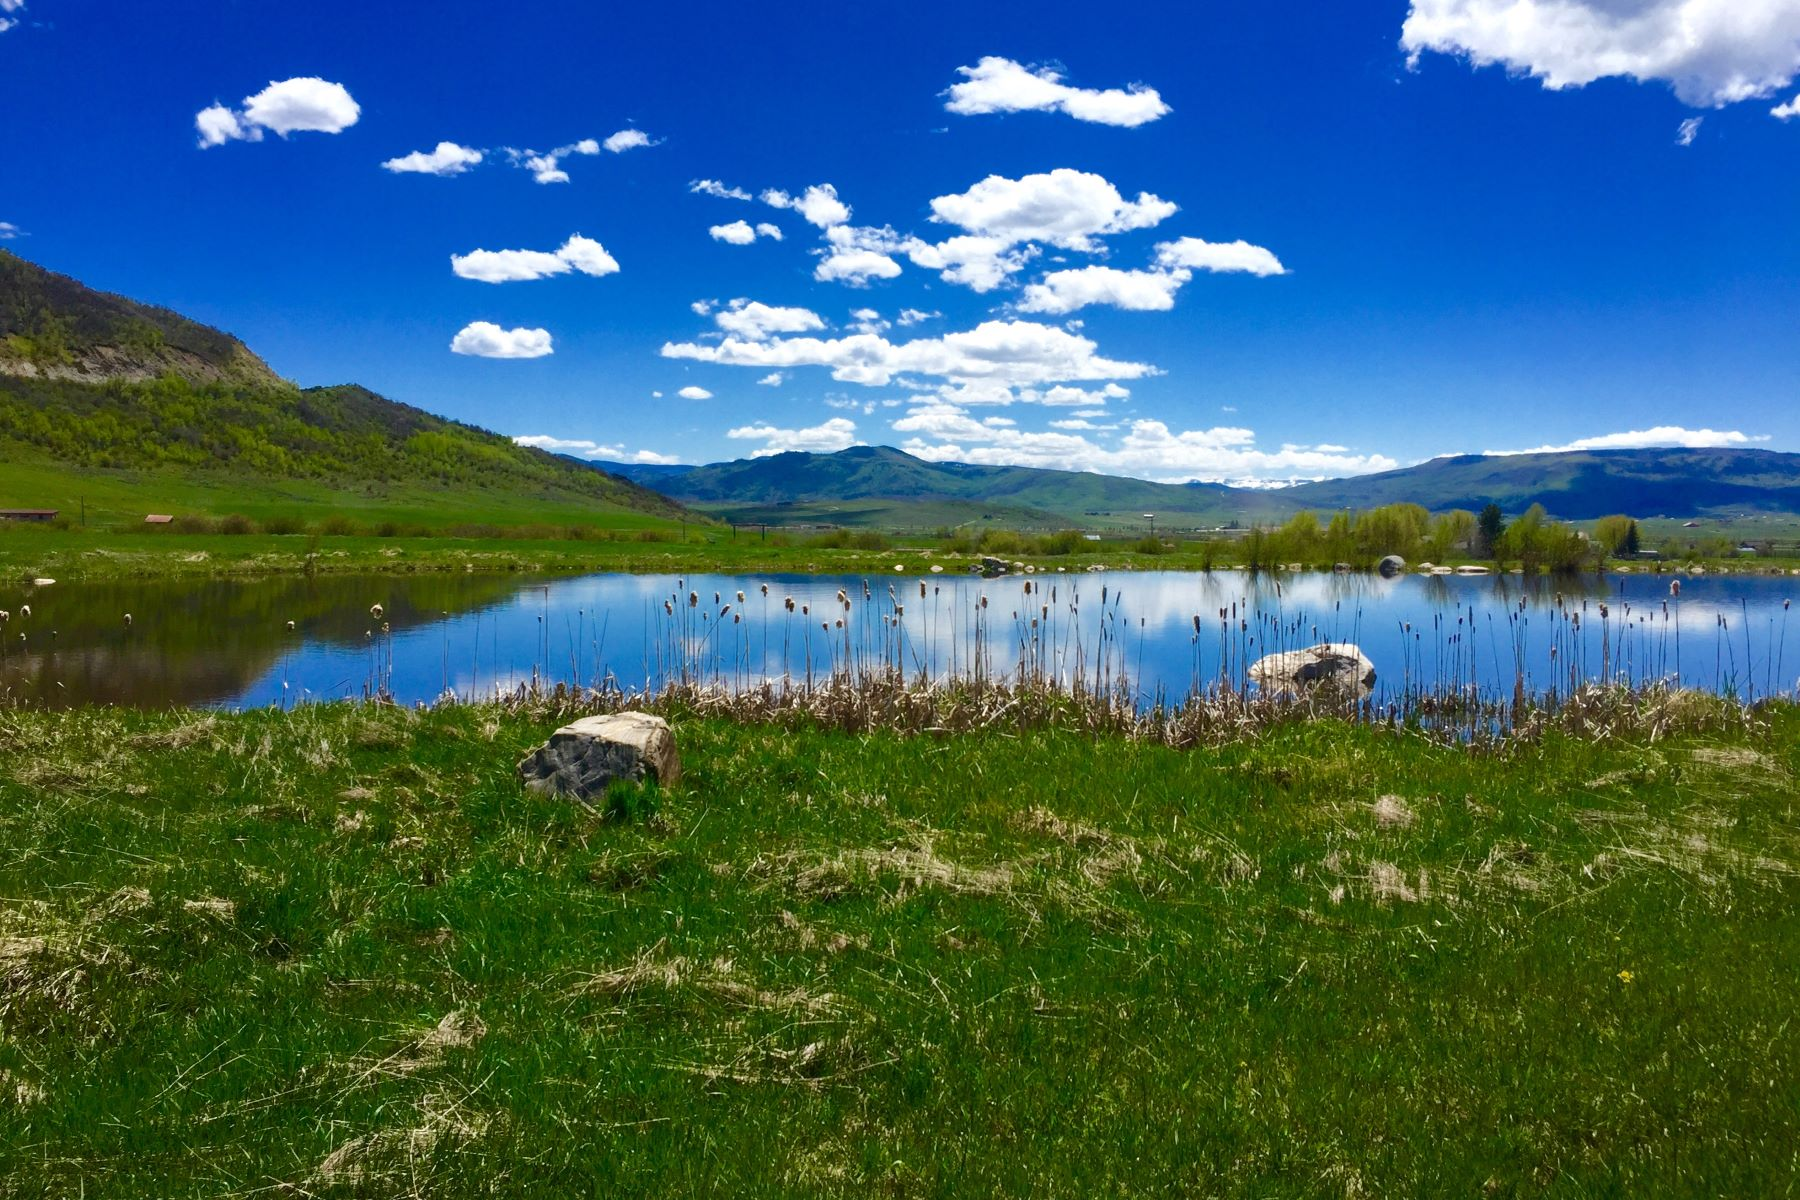 Land for Sale at Excellent Location RCR 20 CR Adjoins both CO 131 & Hwy 40, Steamboat Springs, Colorado, 80477 United States